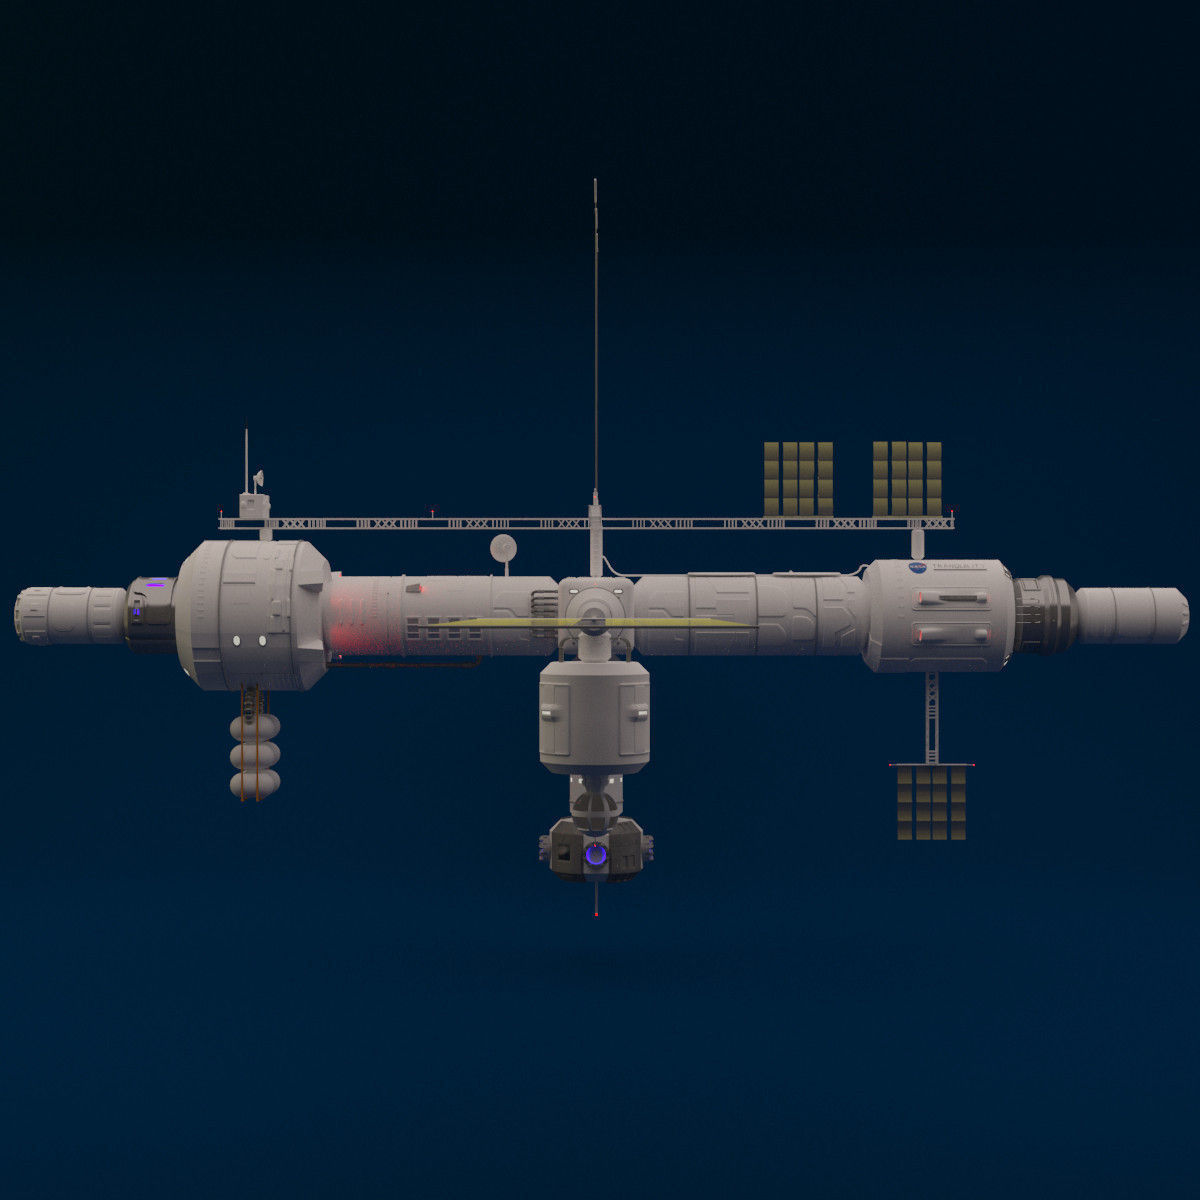 space station 3d models - photo #9